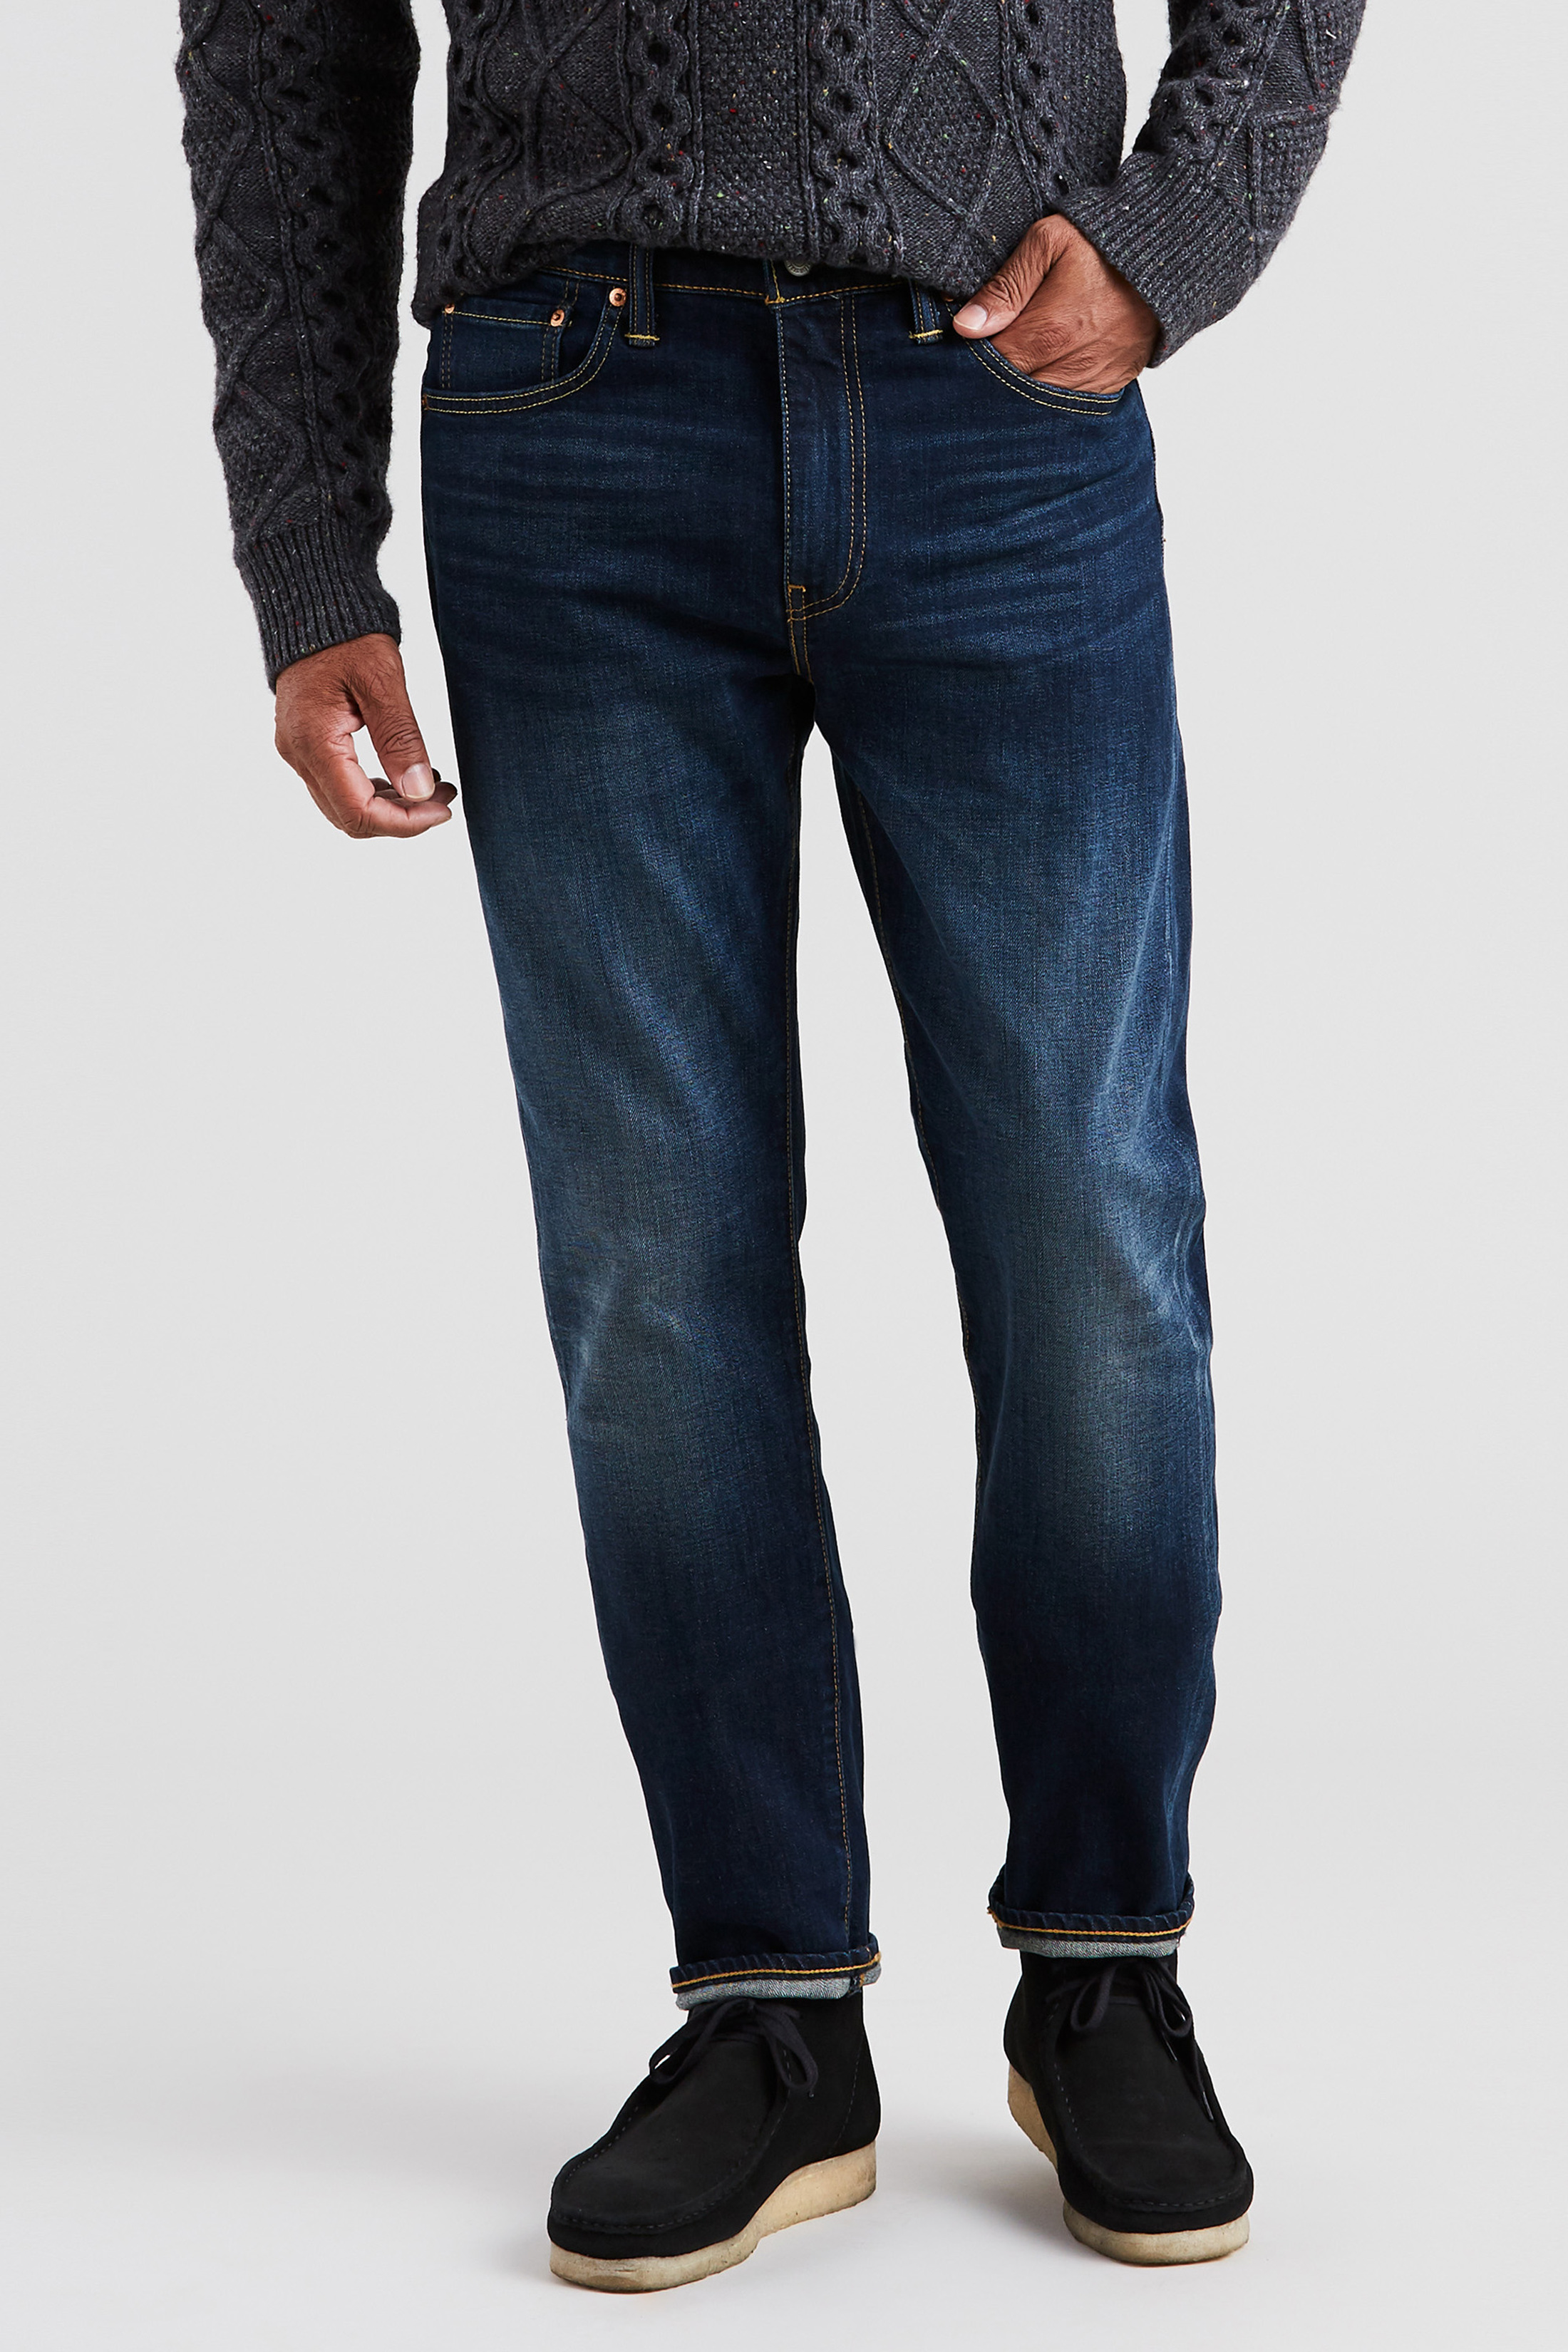 Levi's 502 Jeans City Park Dark Blue 0011 foto 4